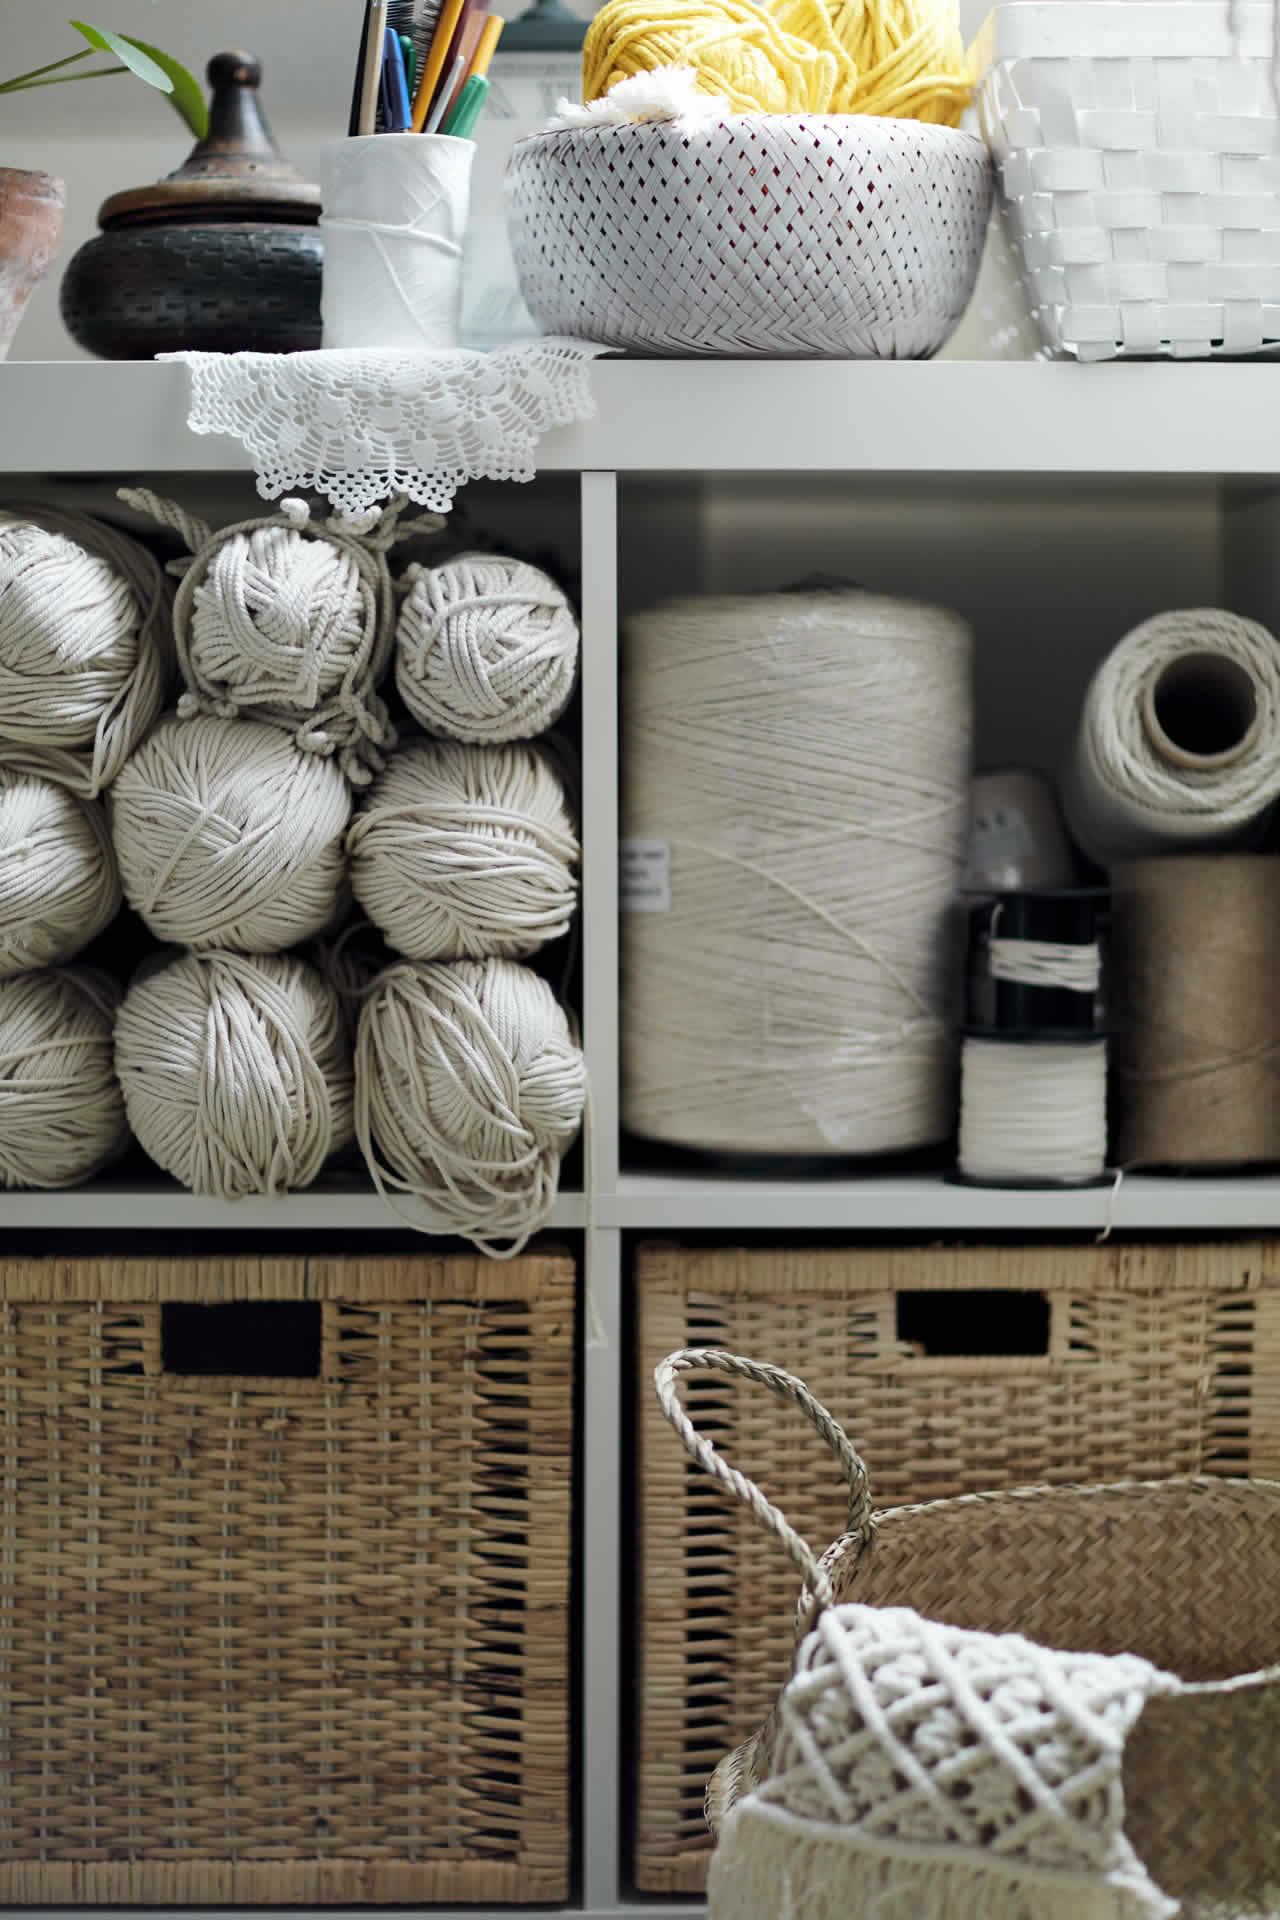 IKEA Ideas - Make room for a creative hobby